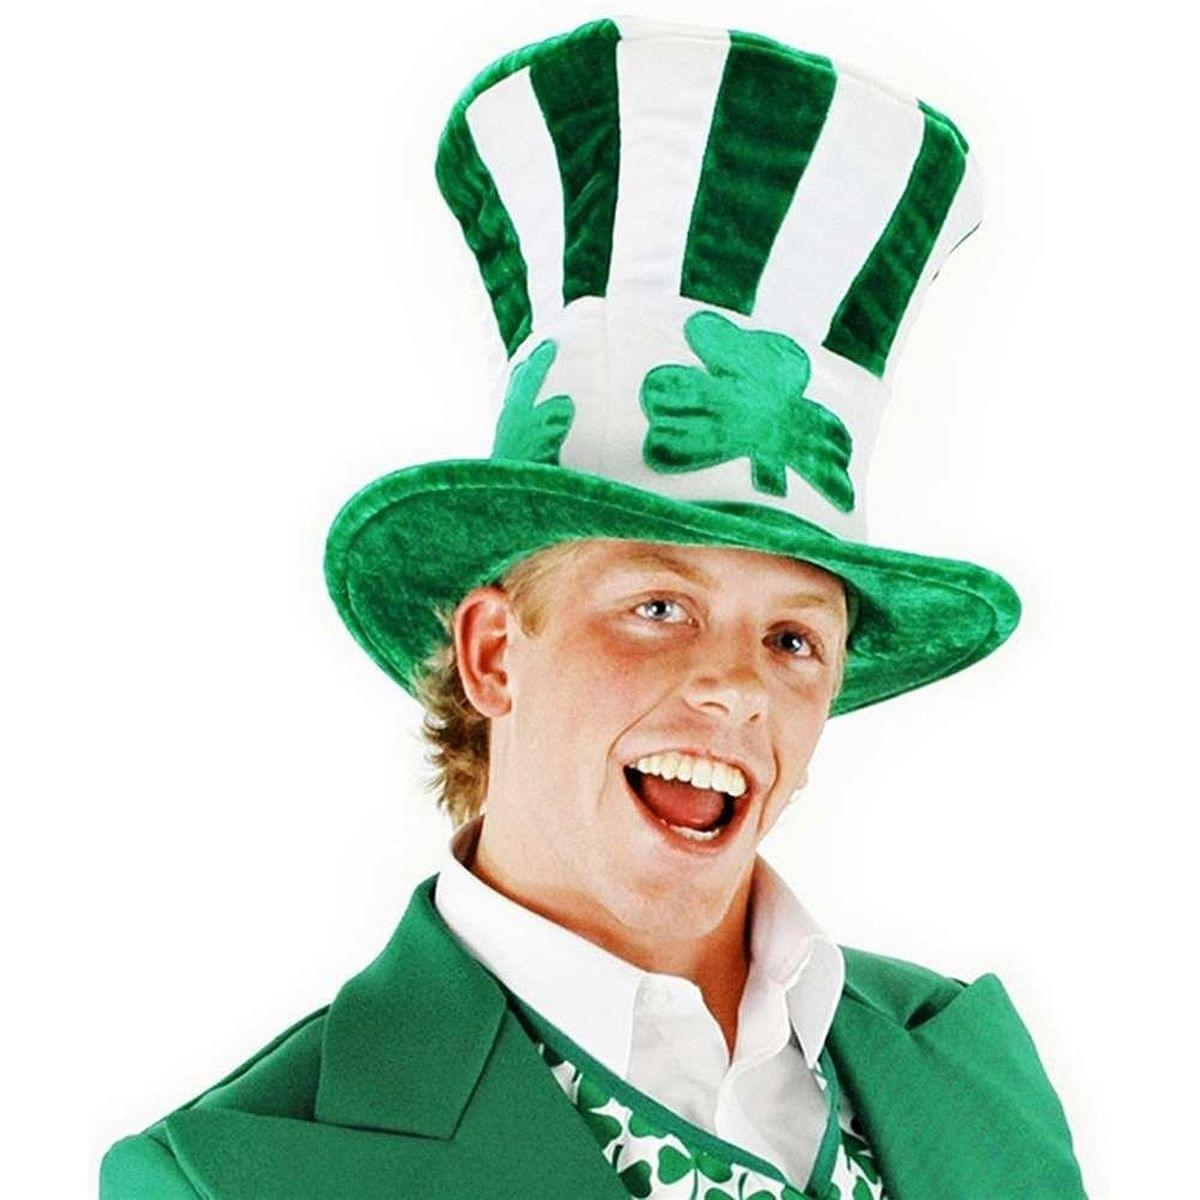 Irish Shamrock Uncle Sam Leprechaun Adult Hat Costume Accessory One Size